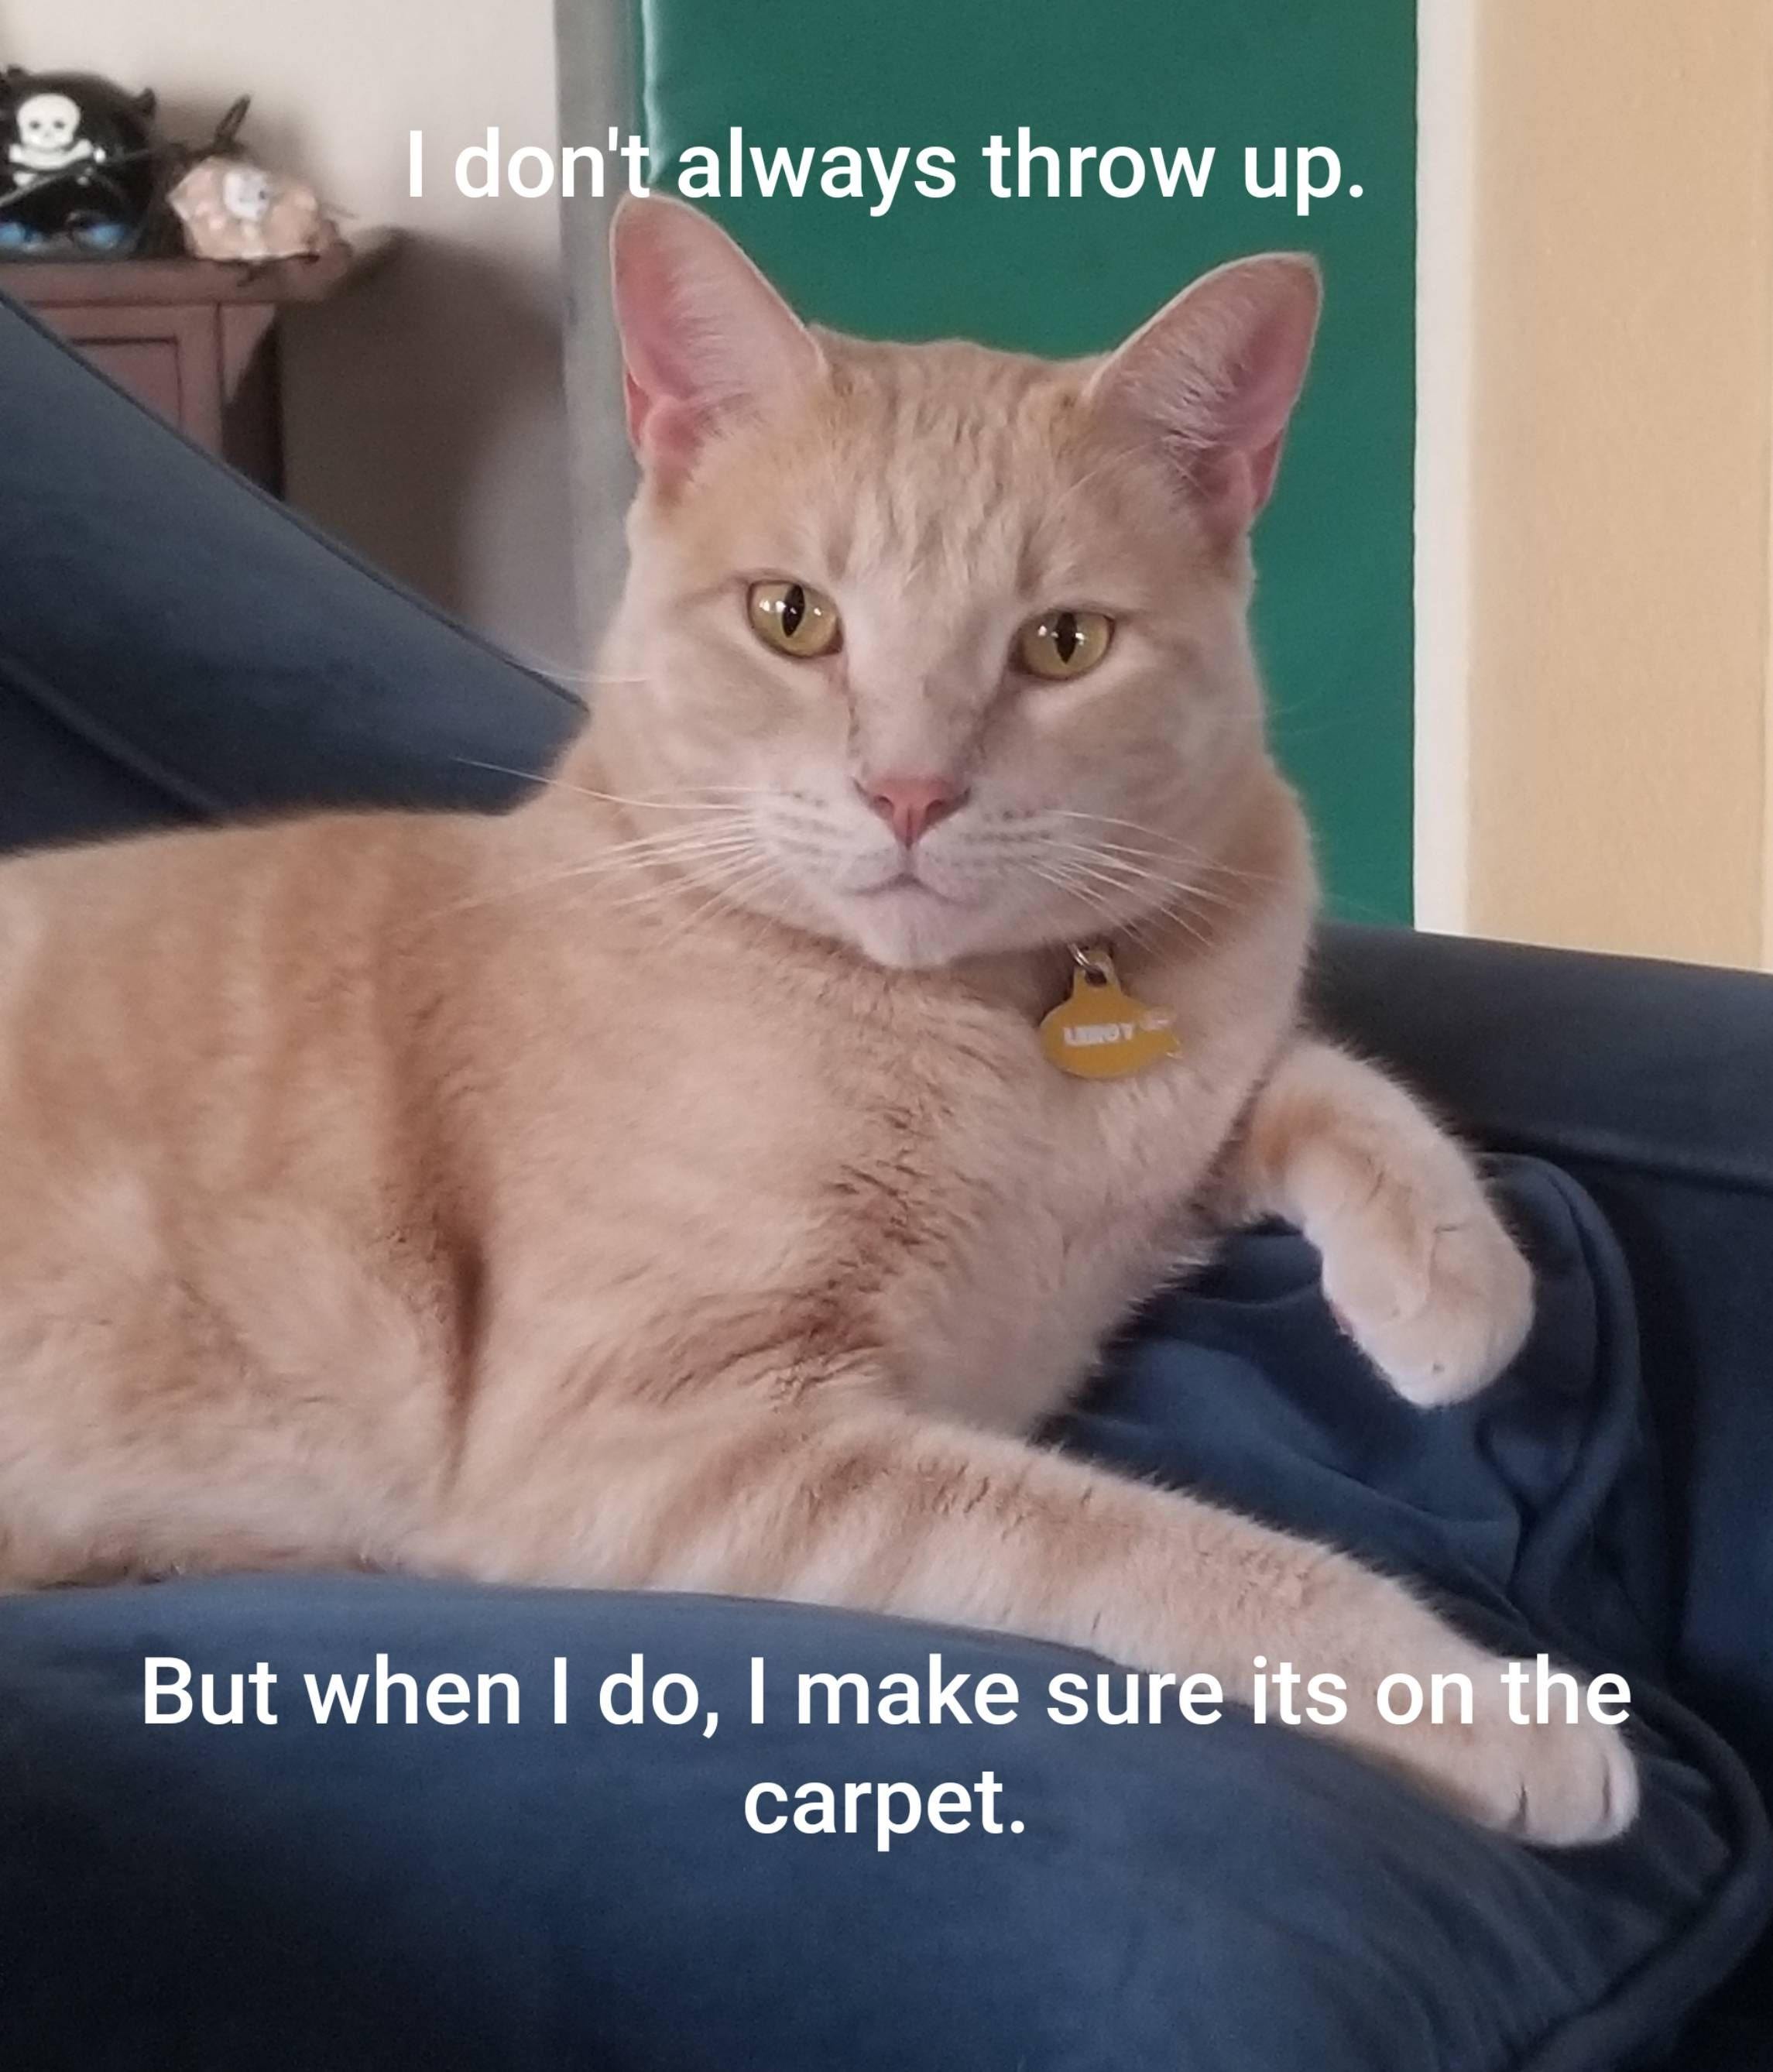 Leroy, the most interesting cat in the world.